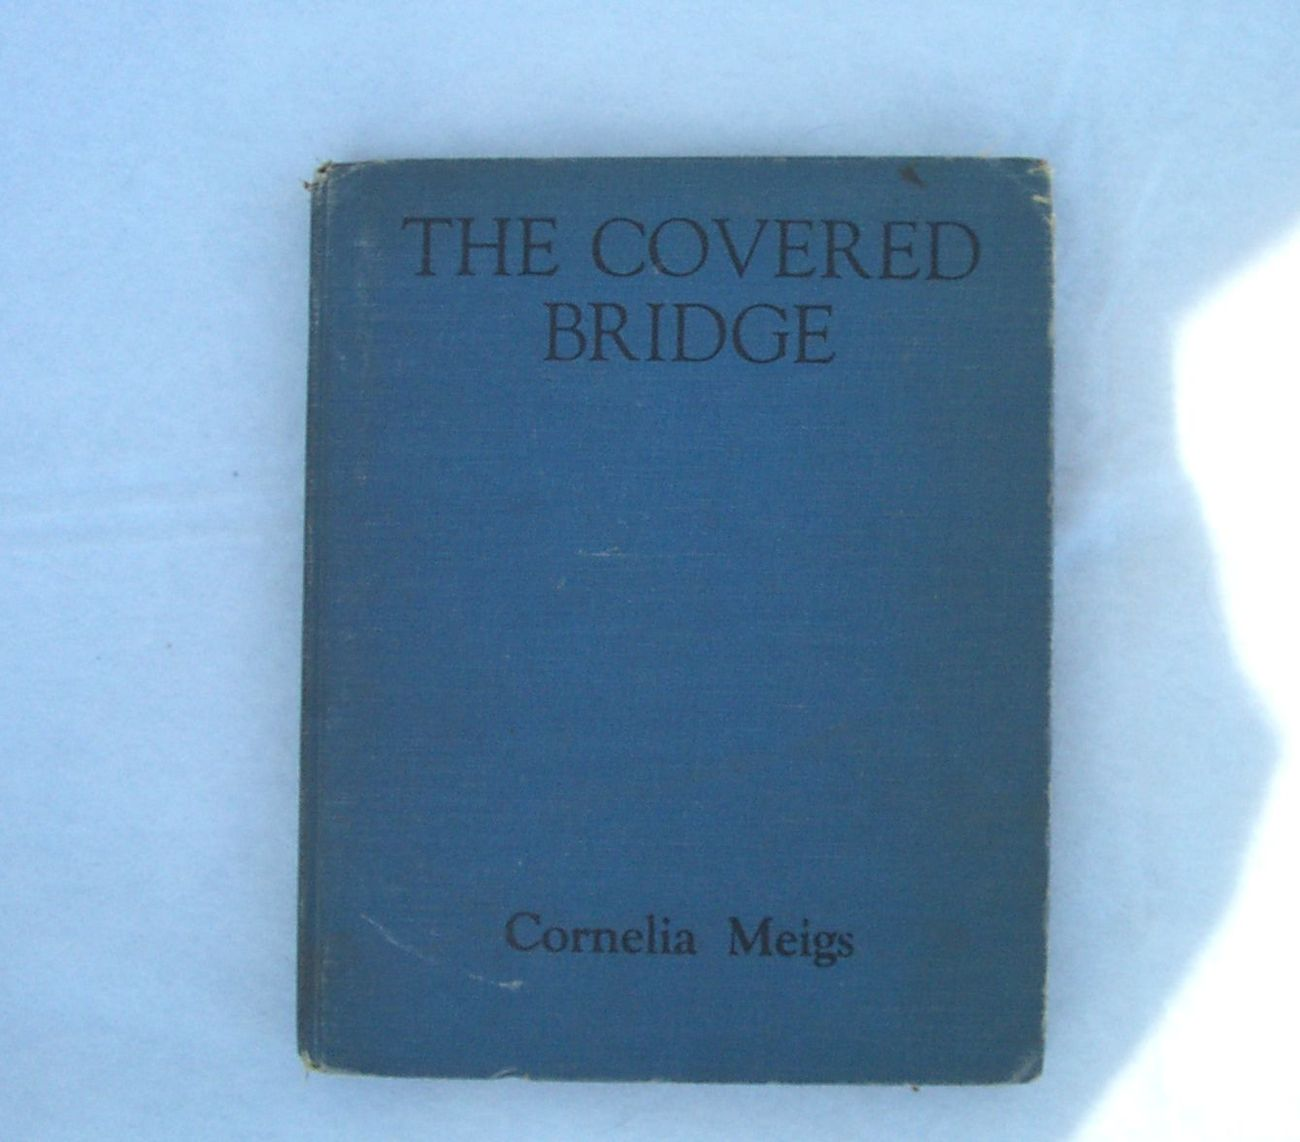 Book The Covered Bridge   Cornelia Meigs  1941